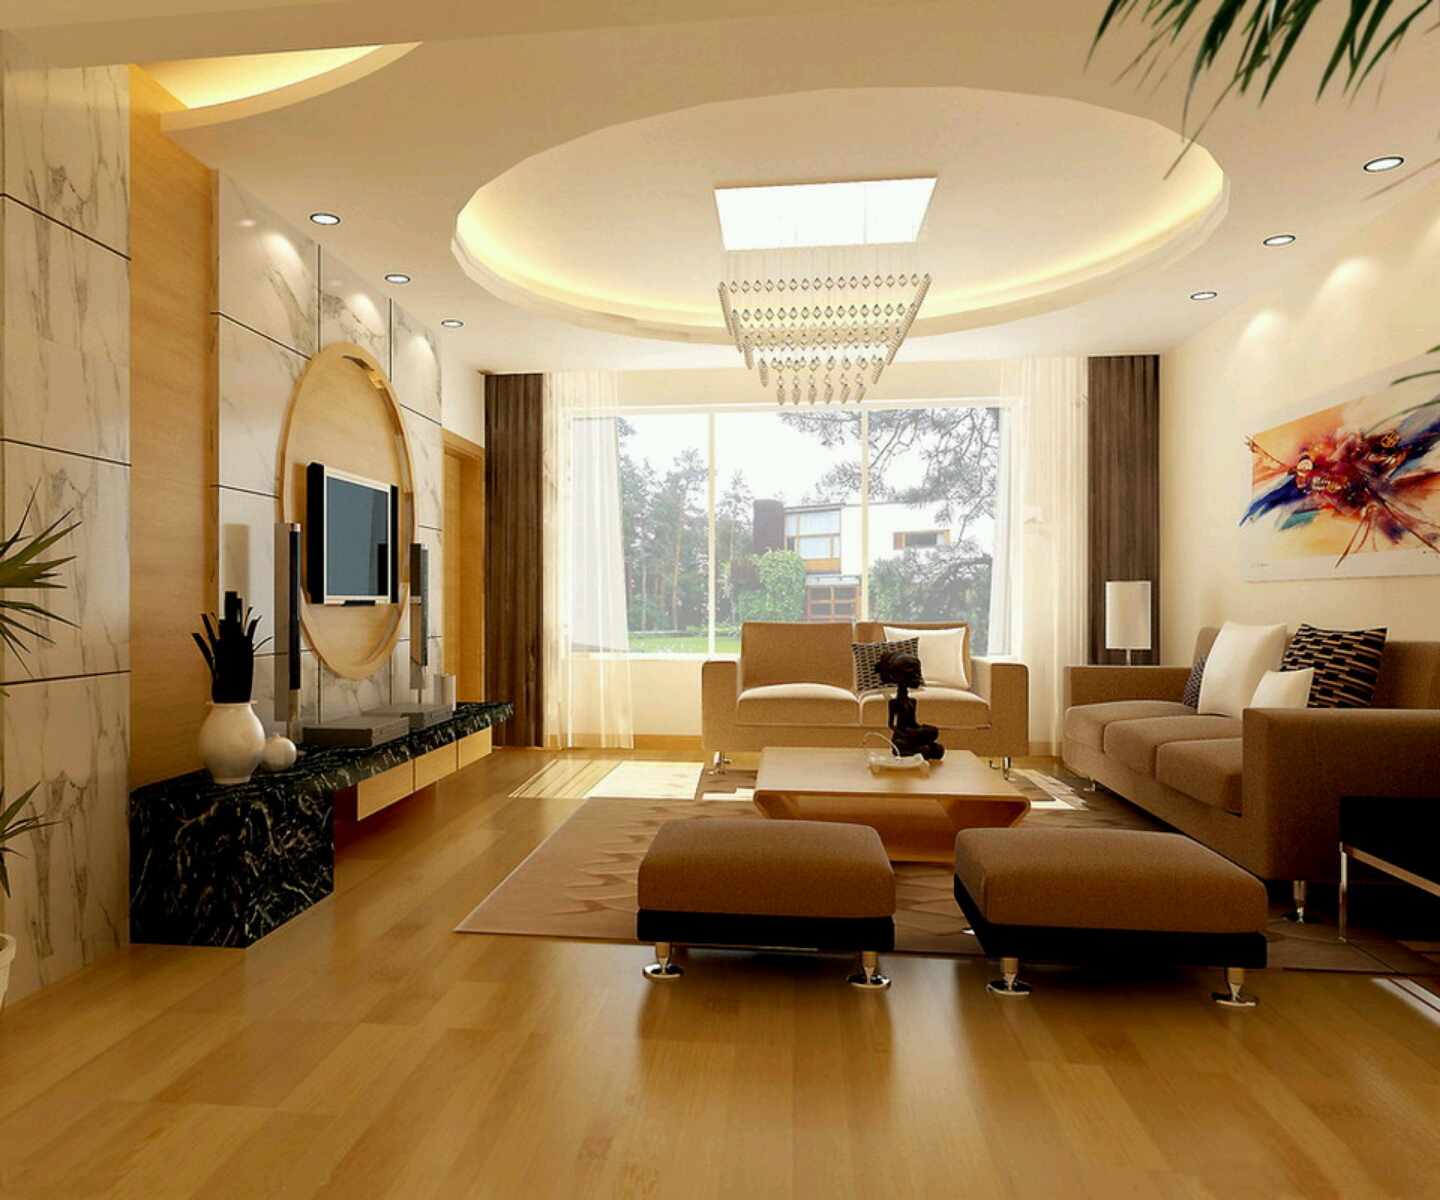 Modern interior decoration living rooms ceiling designs for Drawing room decoration